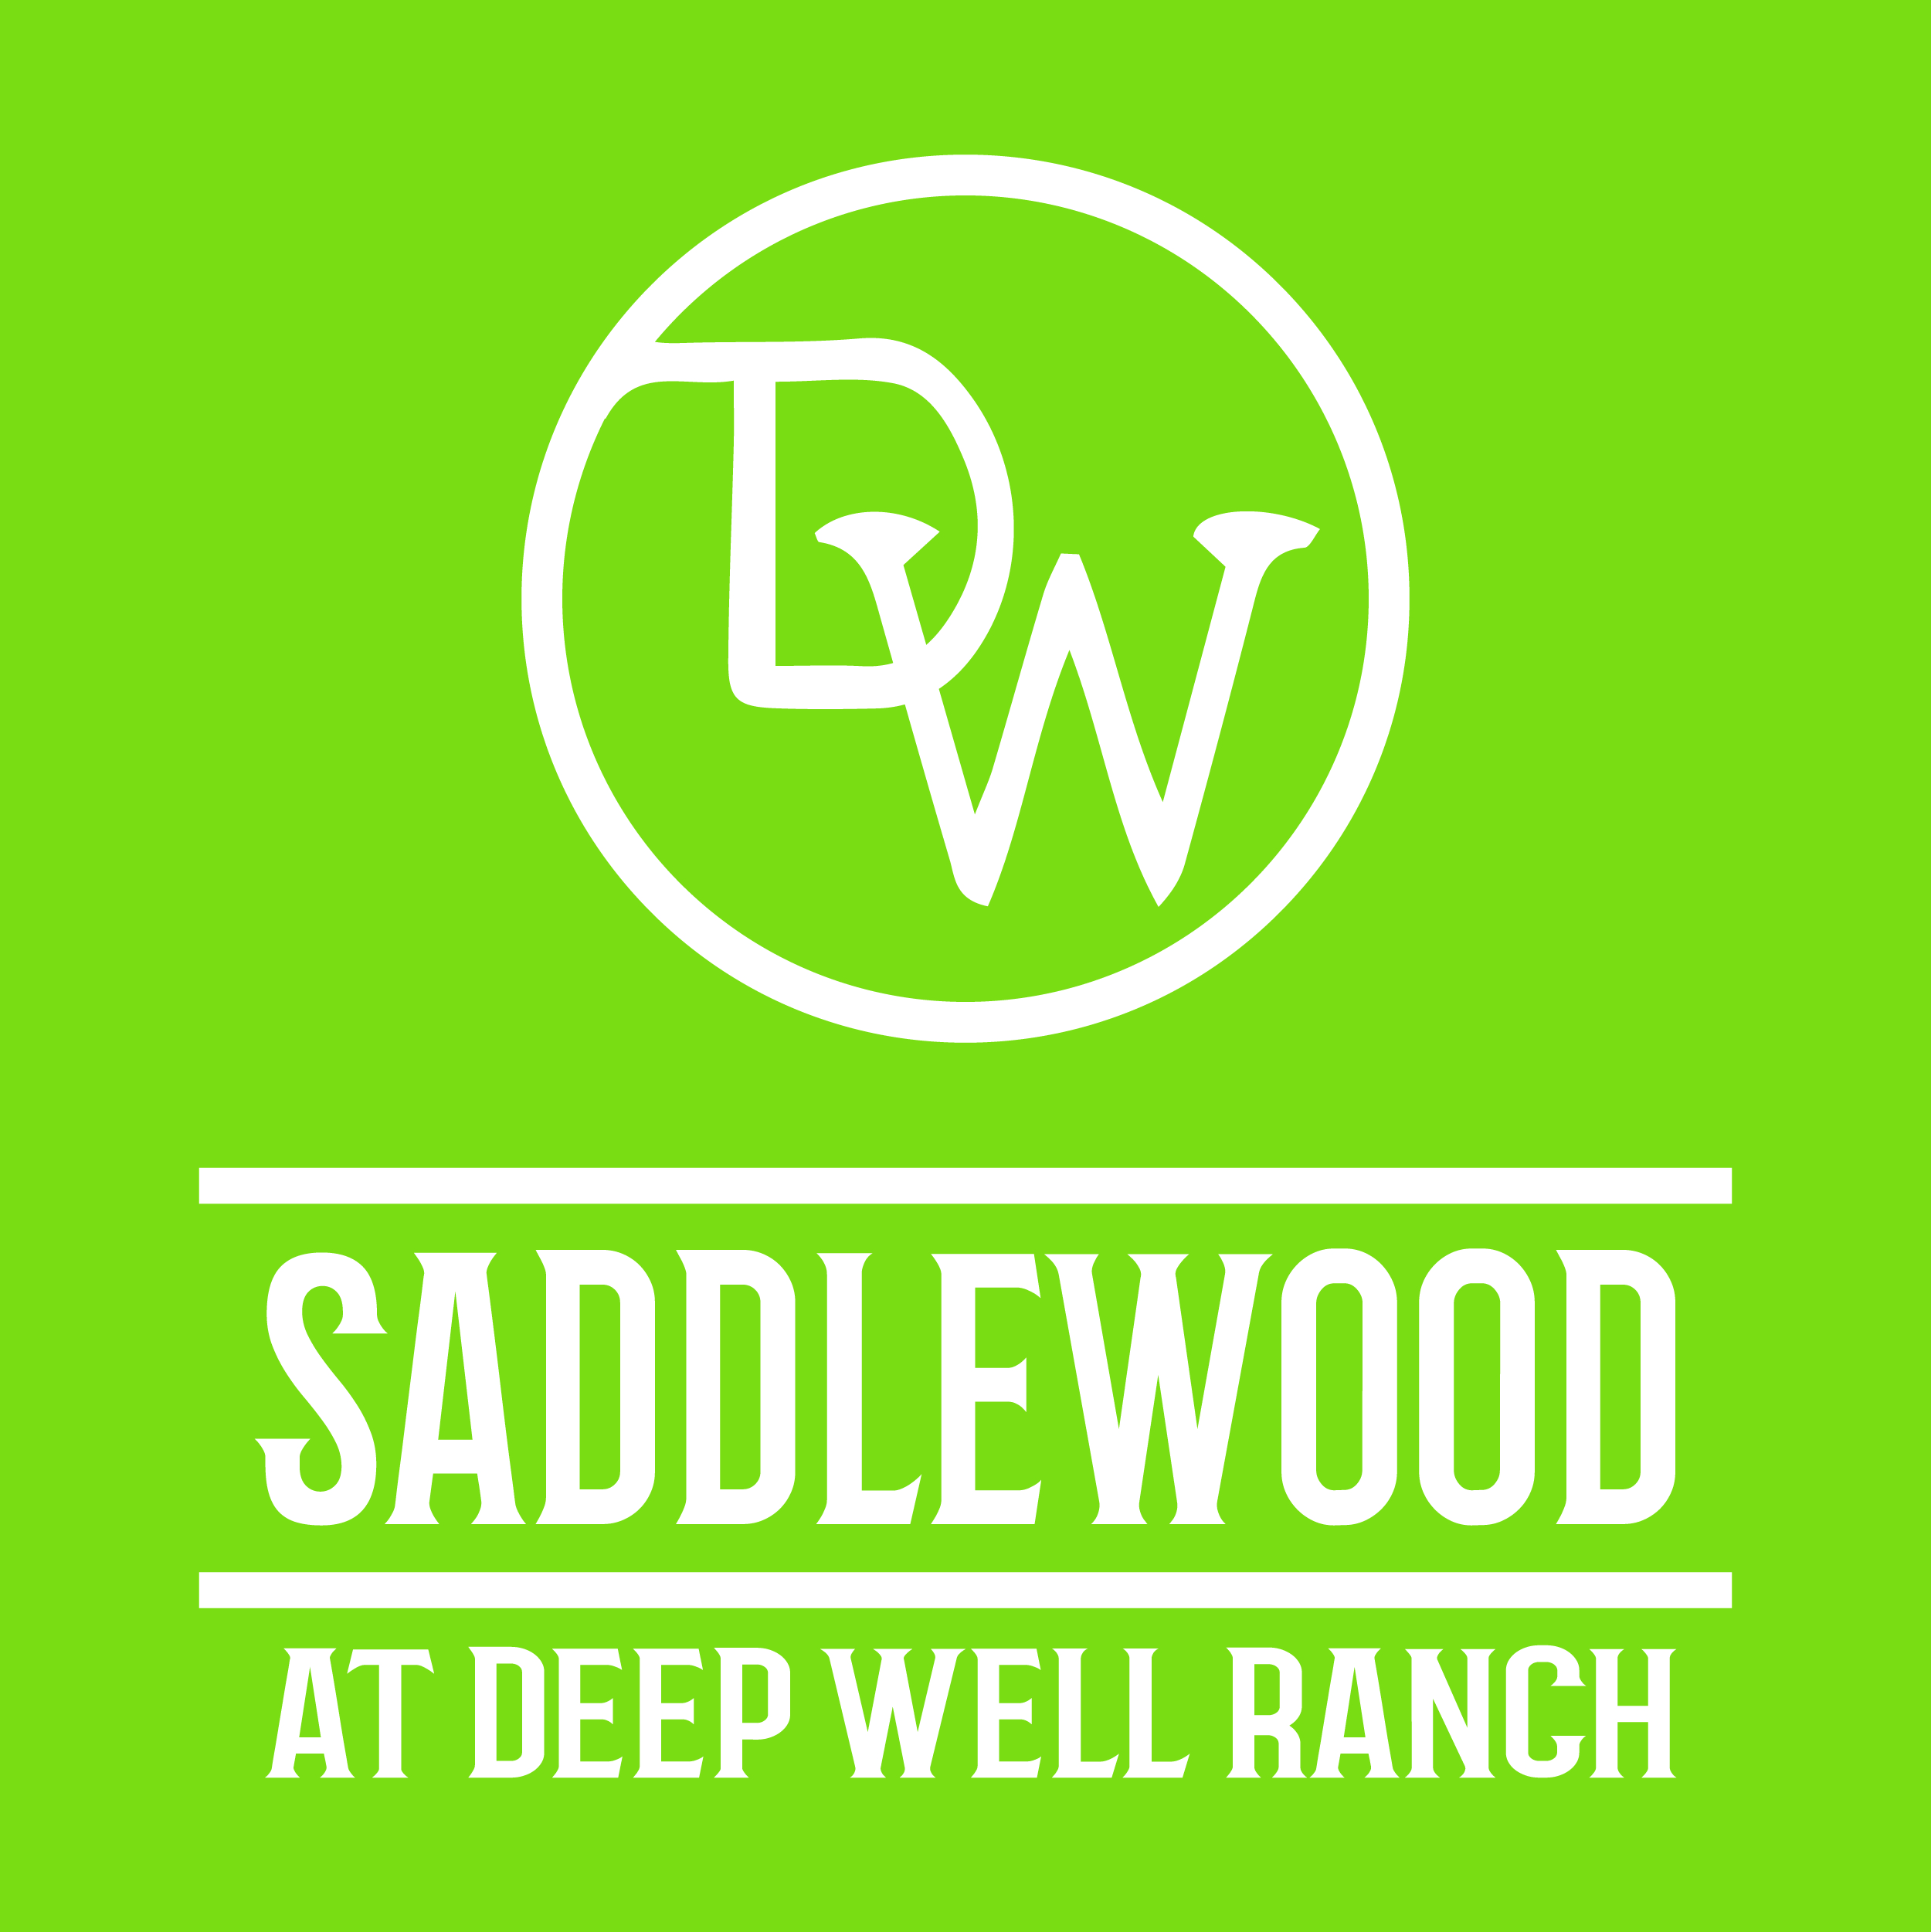 DW Saddlewood_green.jpg